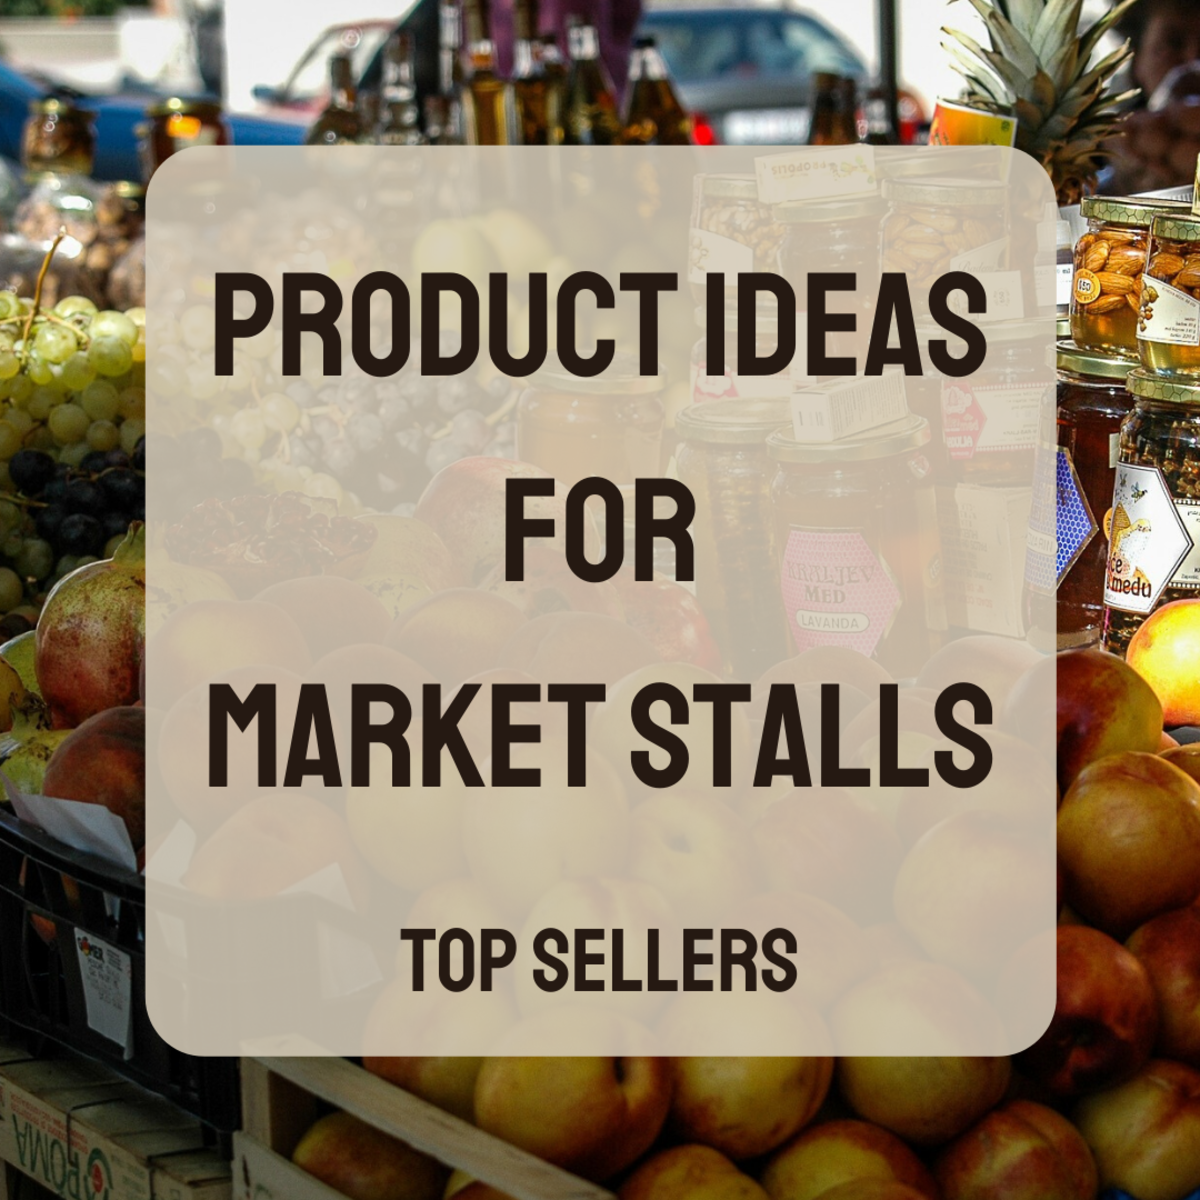 Best-Selling Products for Market Stalls